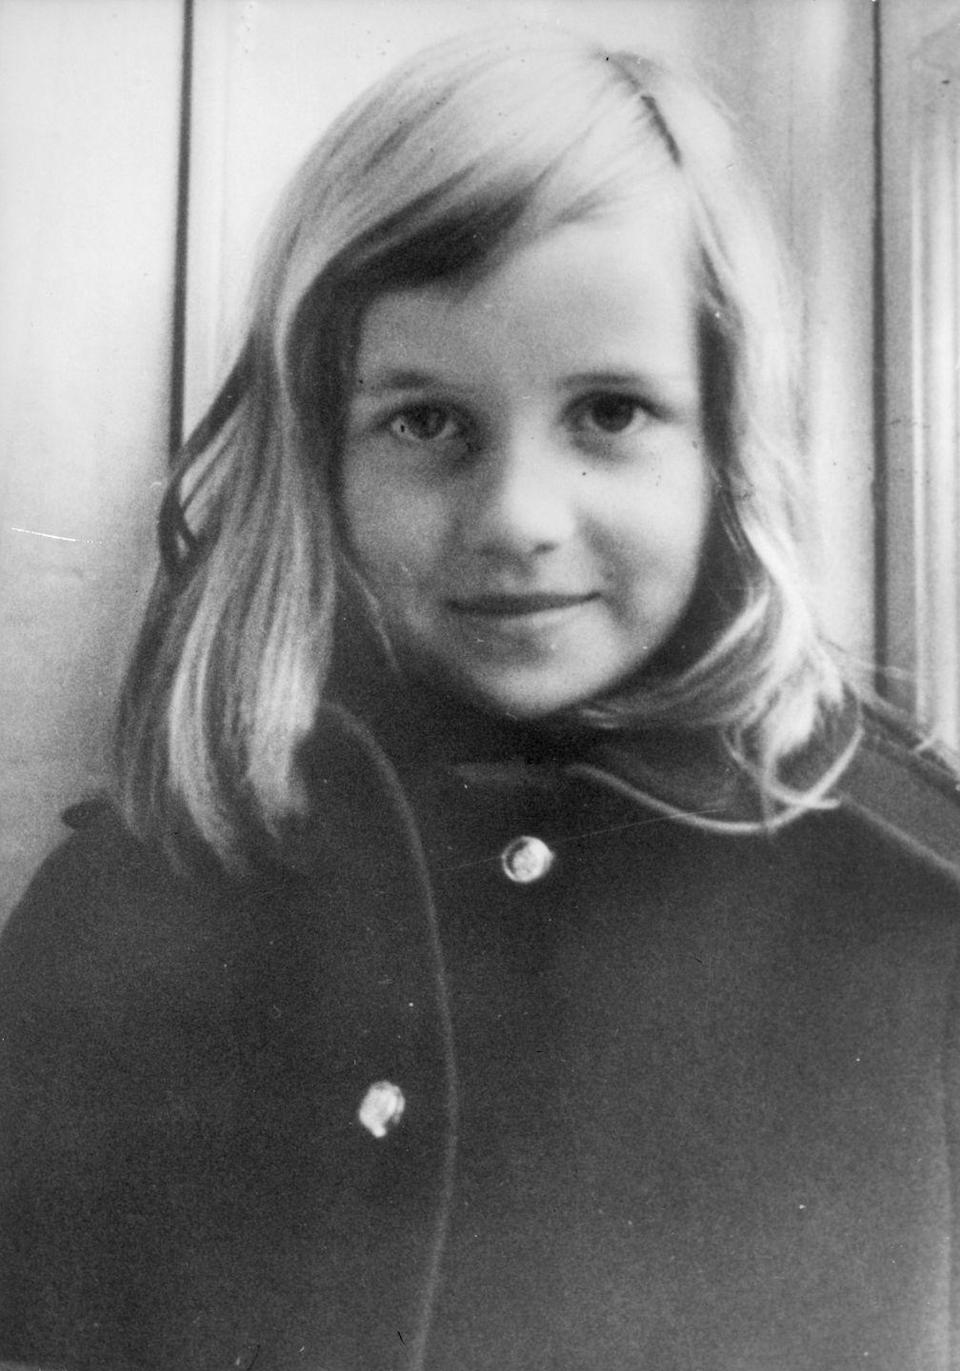 "<p>Diana, pictured circa 1965. Her brother, Charles, <a href=""https://www.biography.com/people/princess-diana-9273782"" rel=""nofollow noopener"" target=""_blank"" data-ylk=""slk:would later say"" class=""link rapid-noclick-resp"">would later say</a> she started exhibiting a spirit of giving and ""fighting for good causes"" at a young age. </p>"